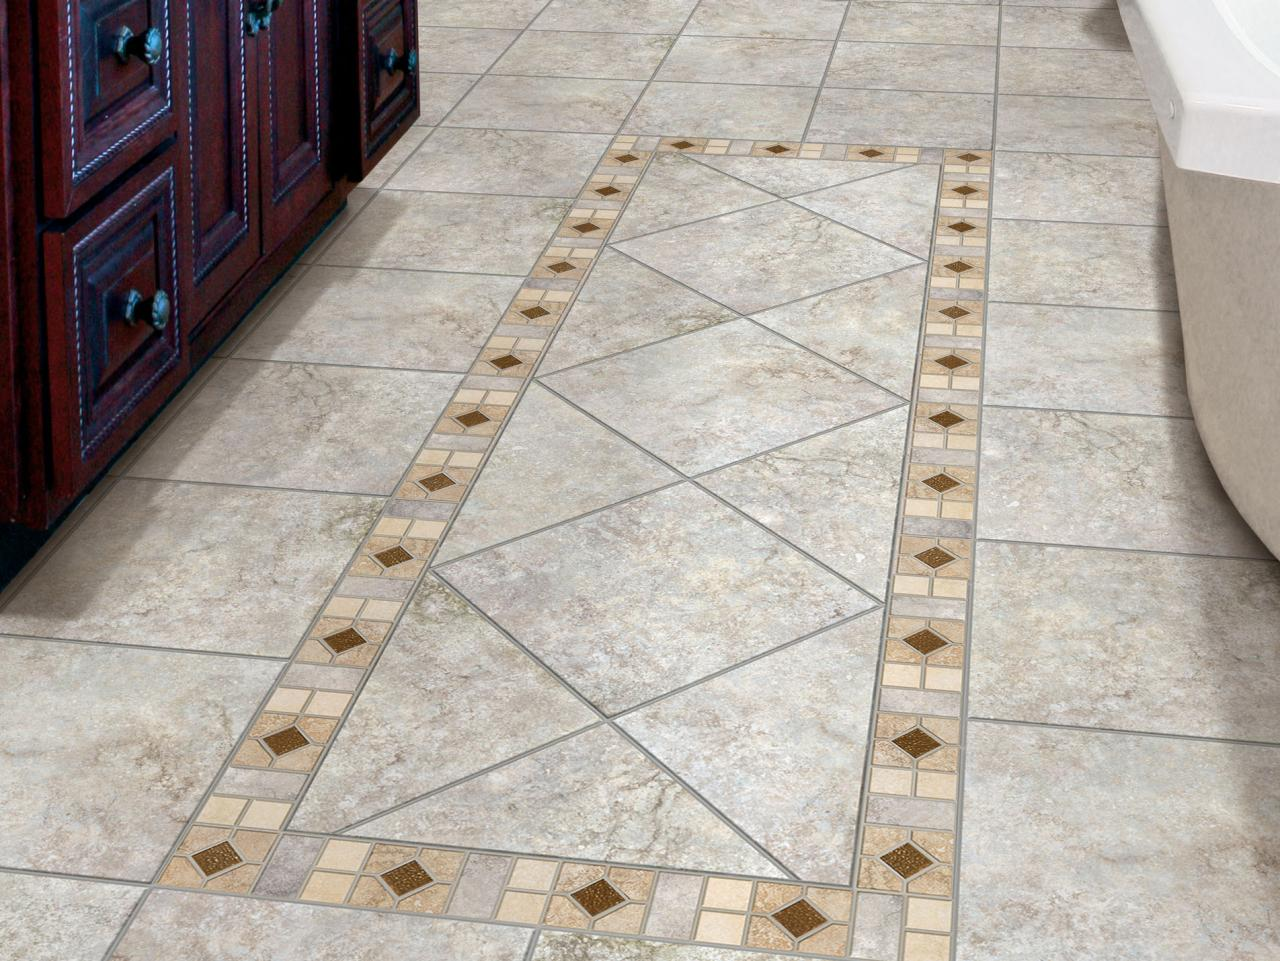 Reasons to Choose Porcelain Tile | HGTV